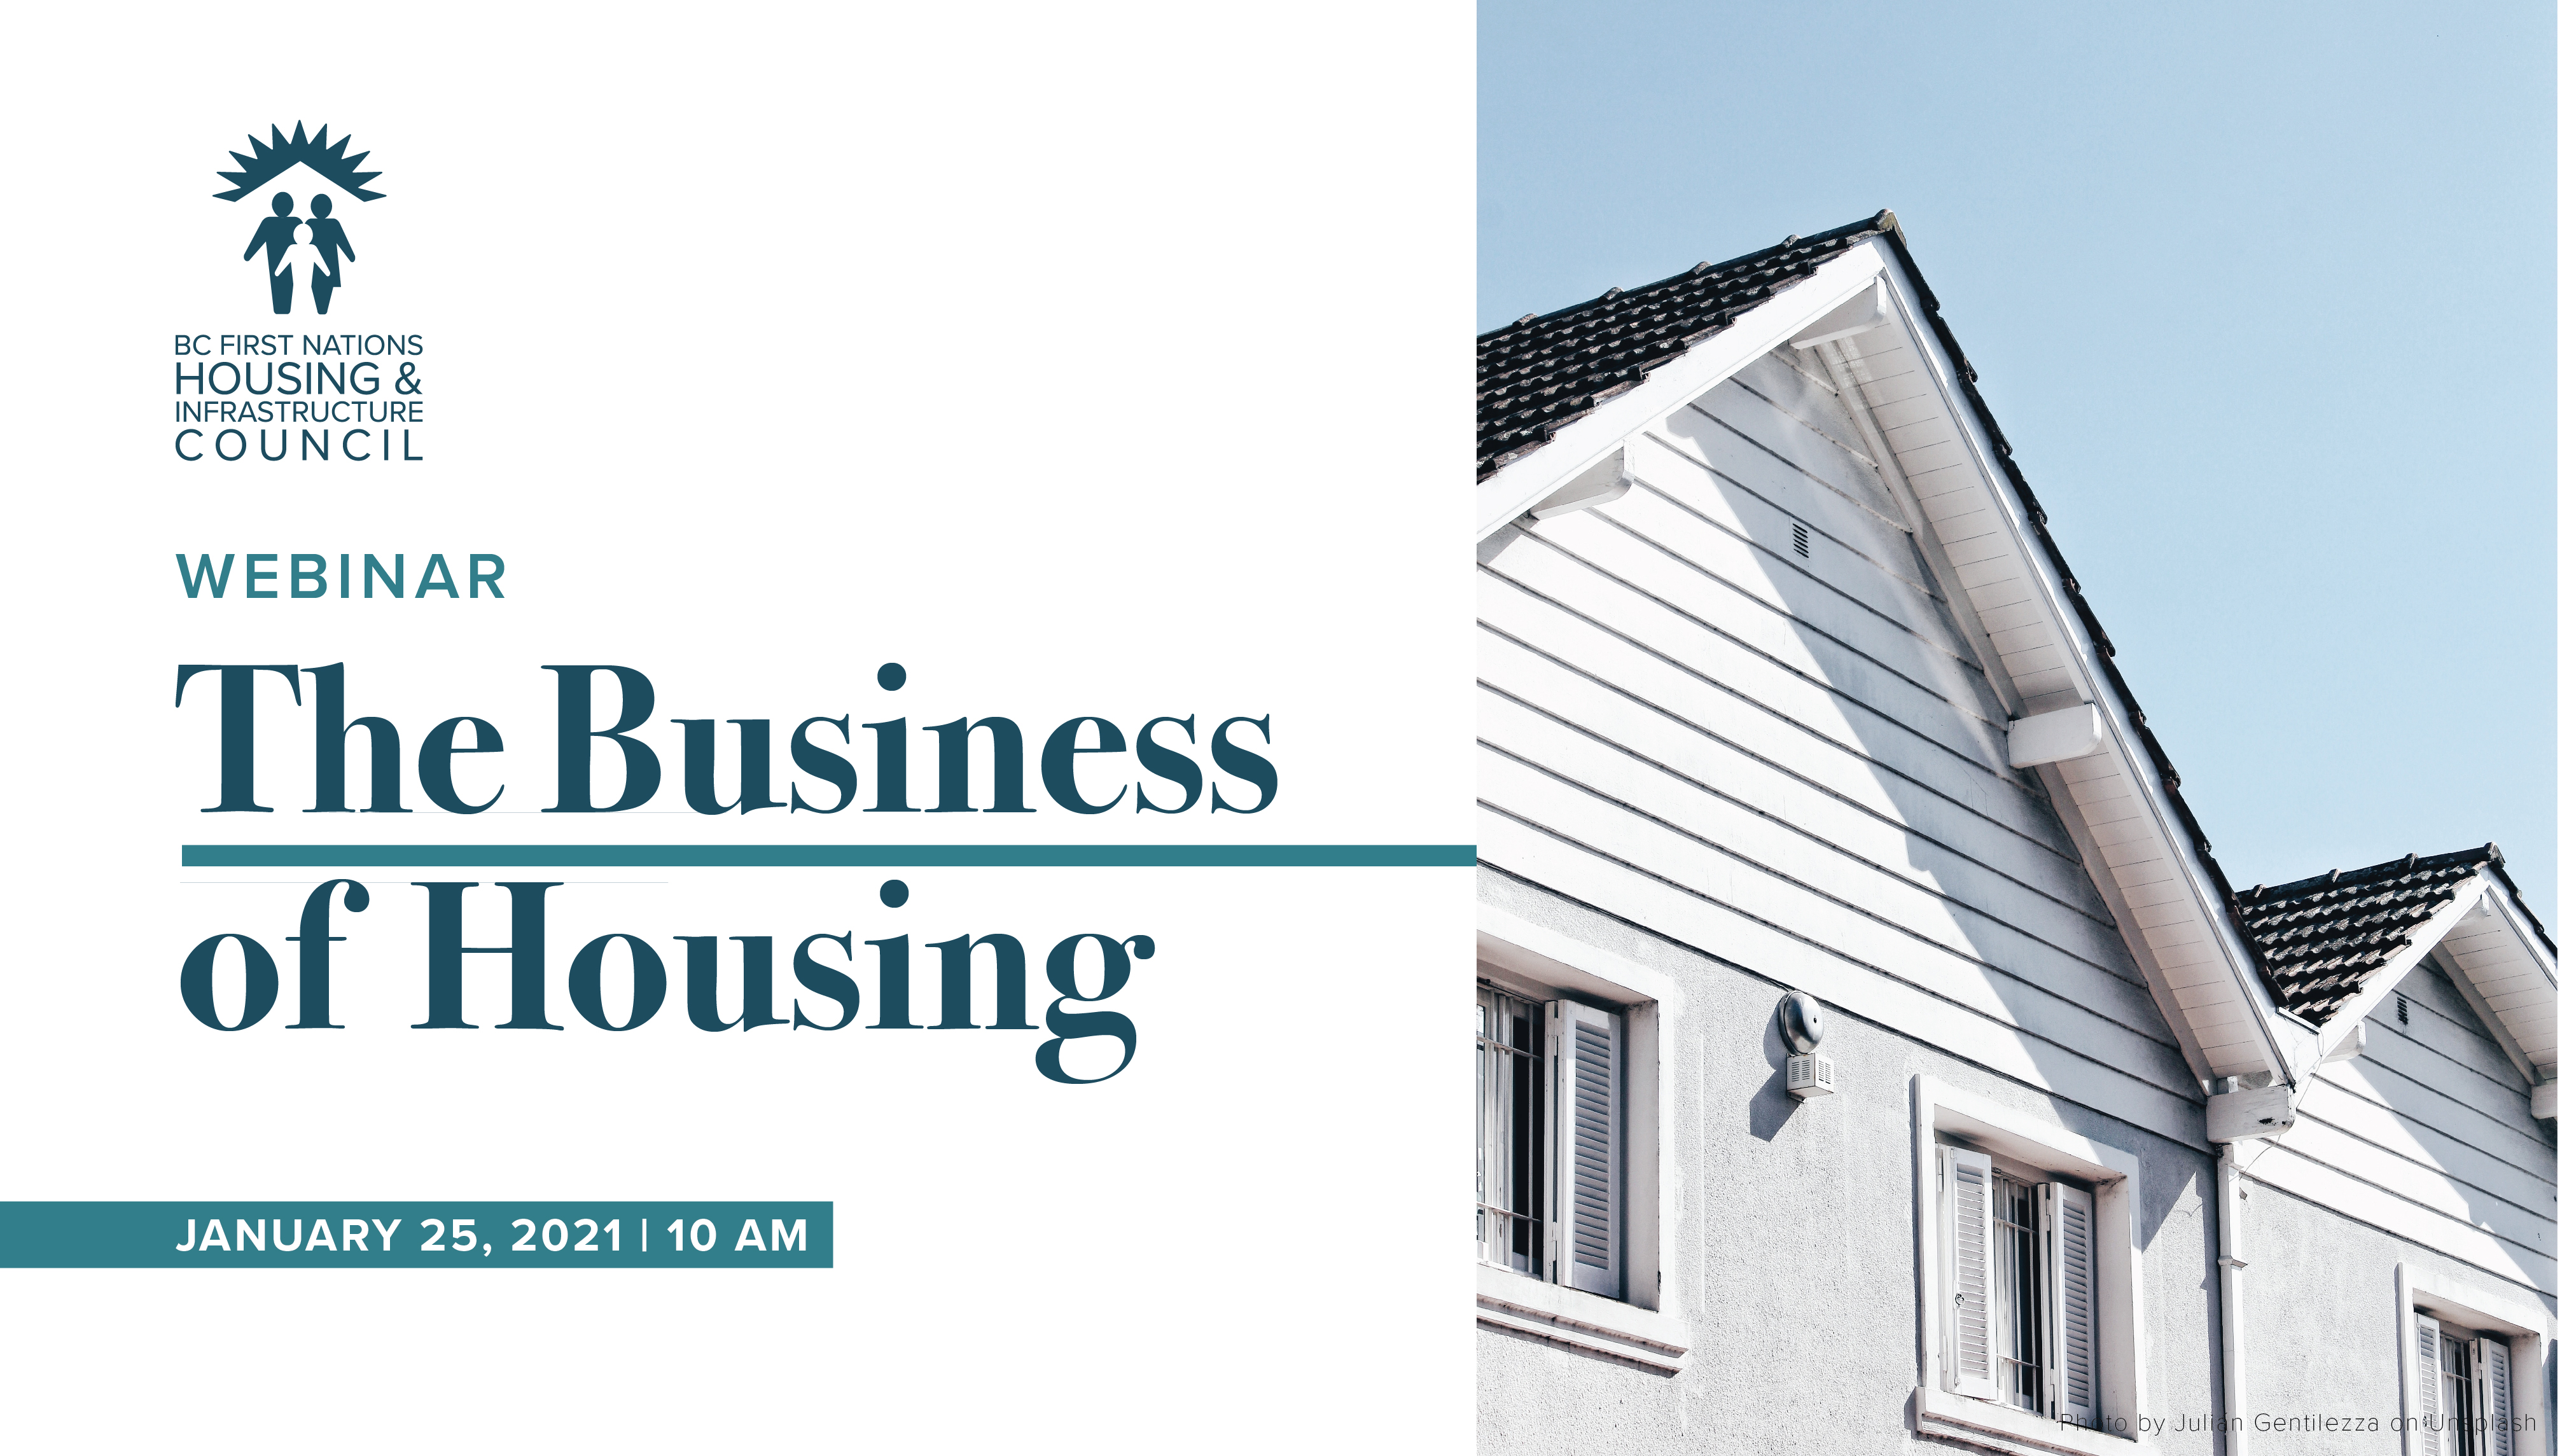 The Business of Housing